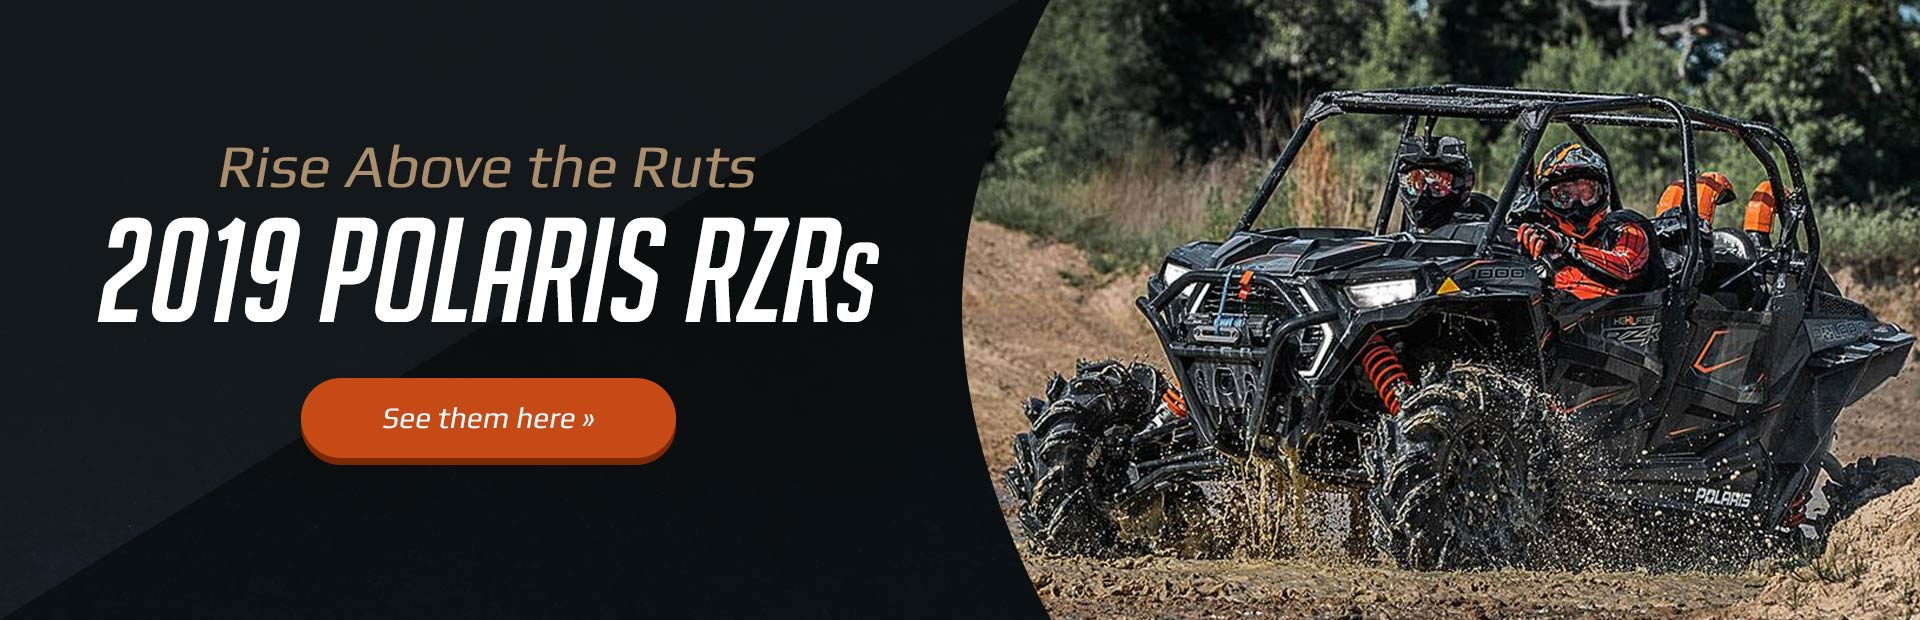 2019 Polaris RZRs: Click here to view the models.